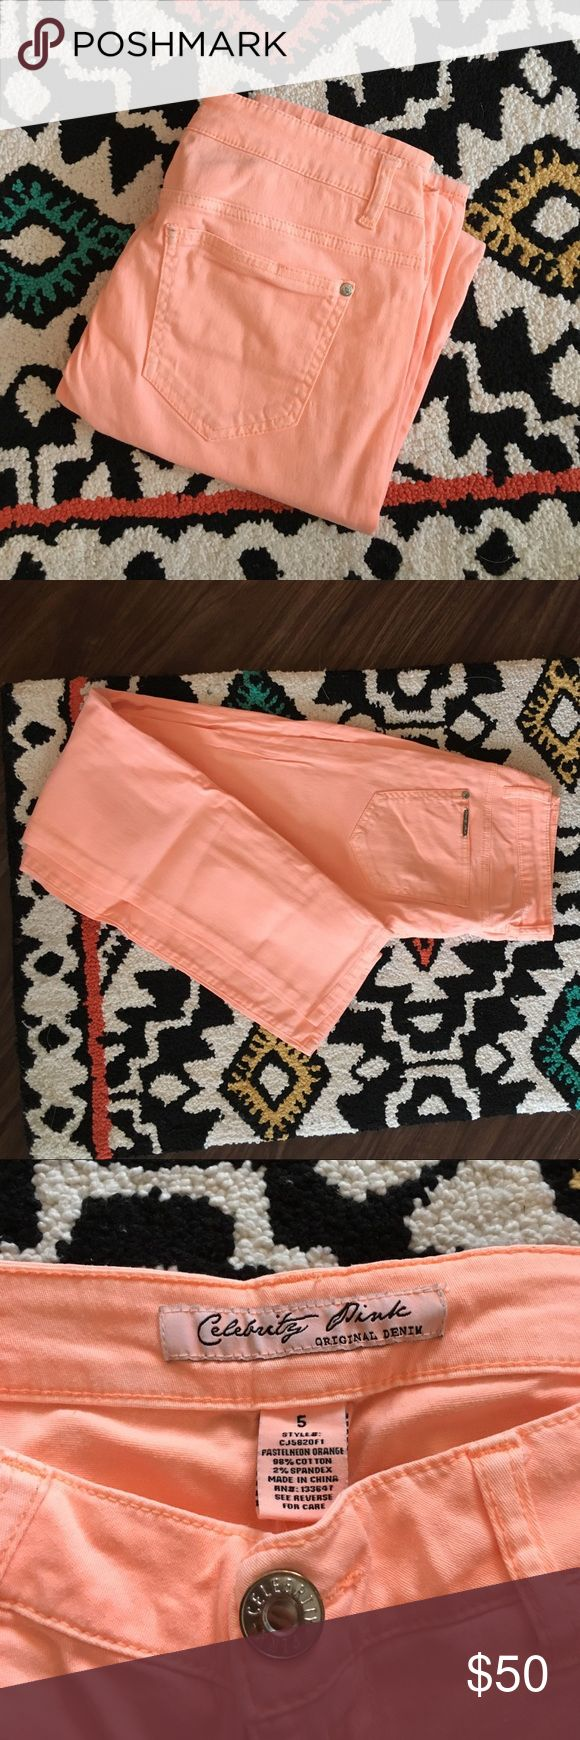 Peach 🍑 summery skinny jeans Peach colored skinny jeans, perfect for summer, size 5, 98% cotton,, 2% spandex, celebrity pink original denim, worn once, like new Celebrity Pink Pants Skinny